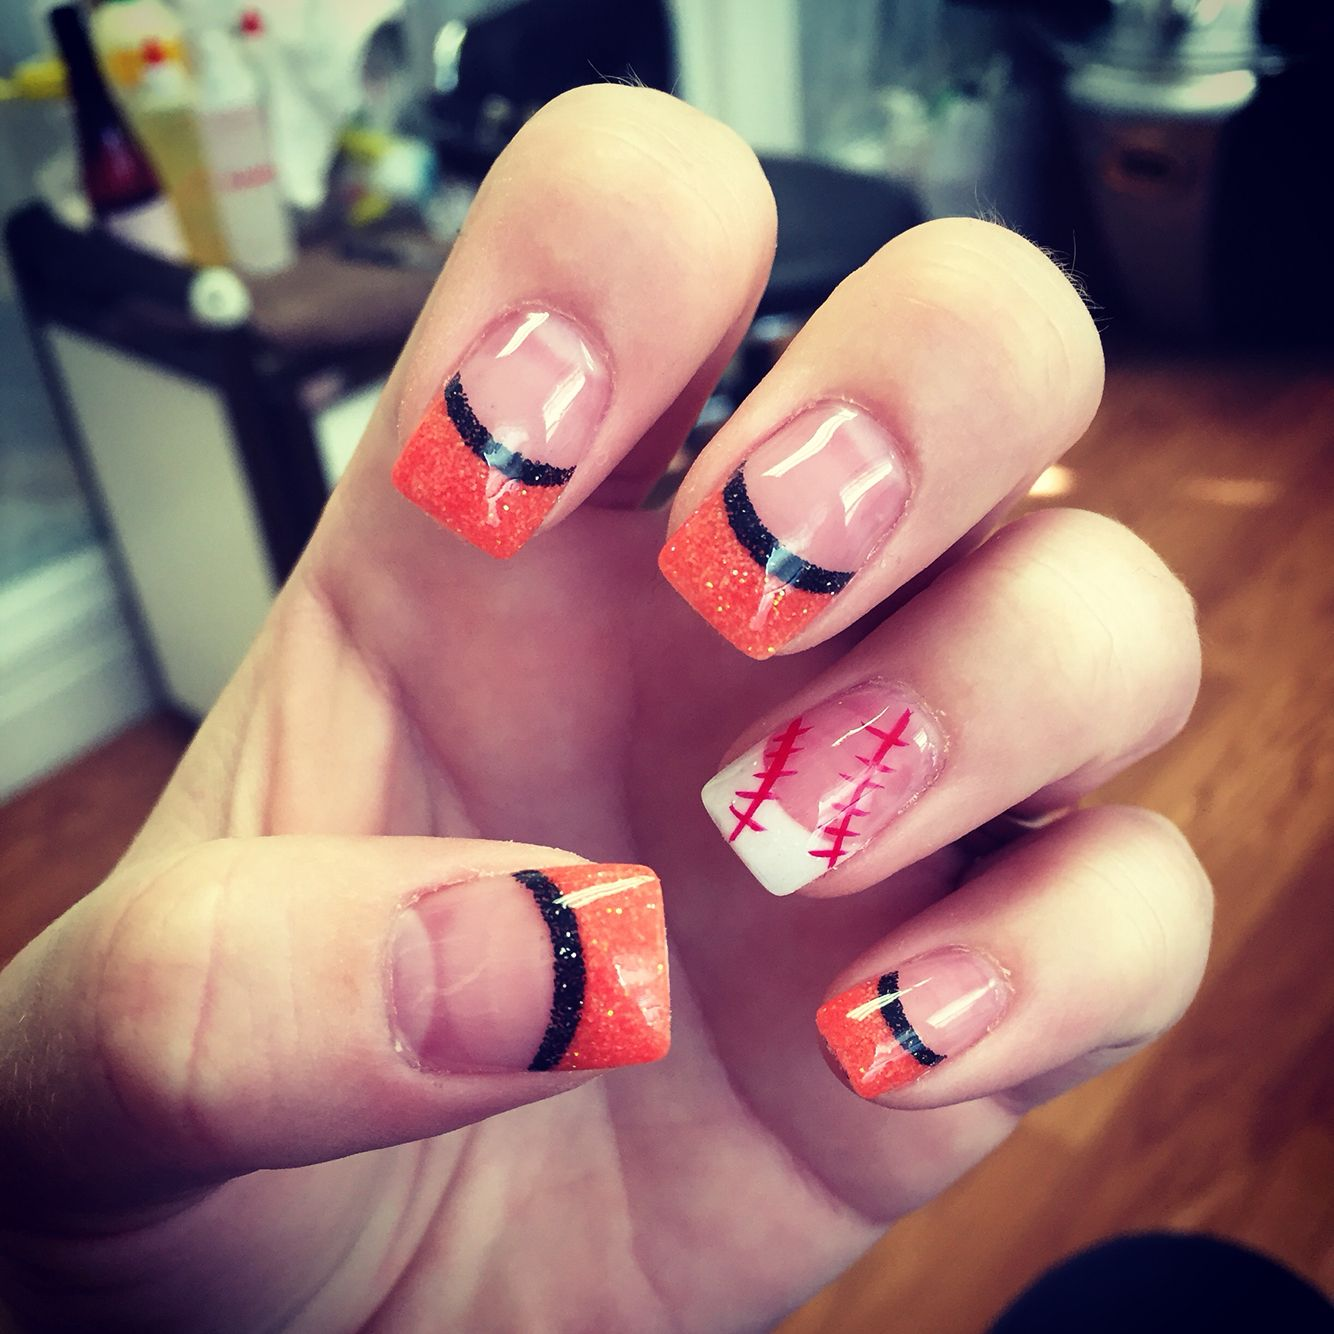 SF Giants Nails by Chelsea Vo at Nouvea Skin Salon & Spa in ...